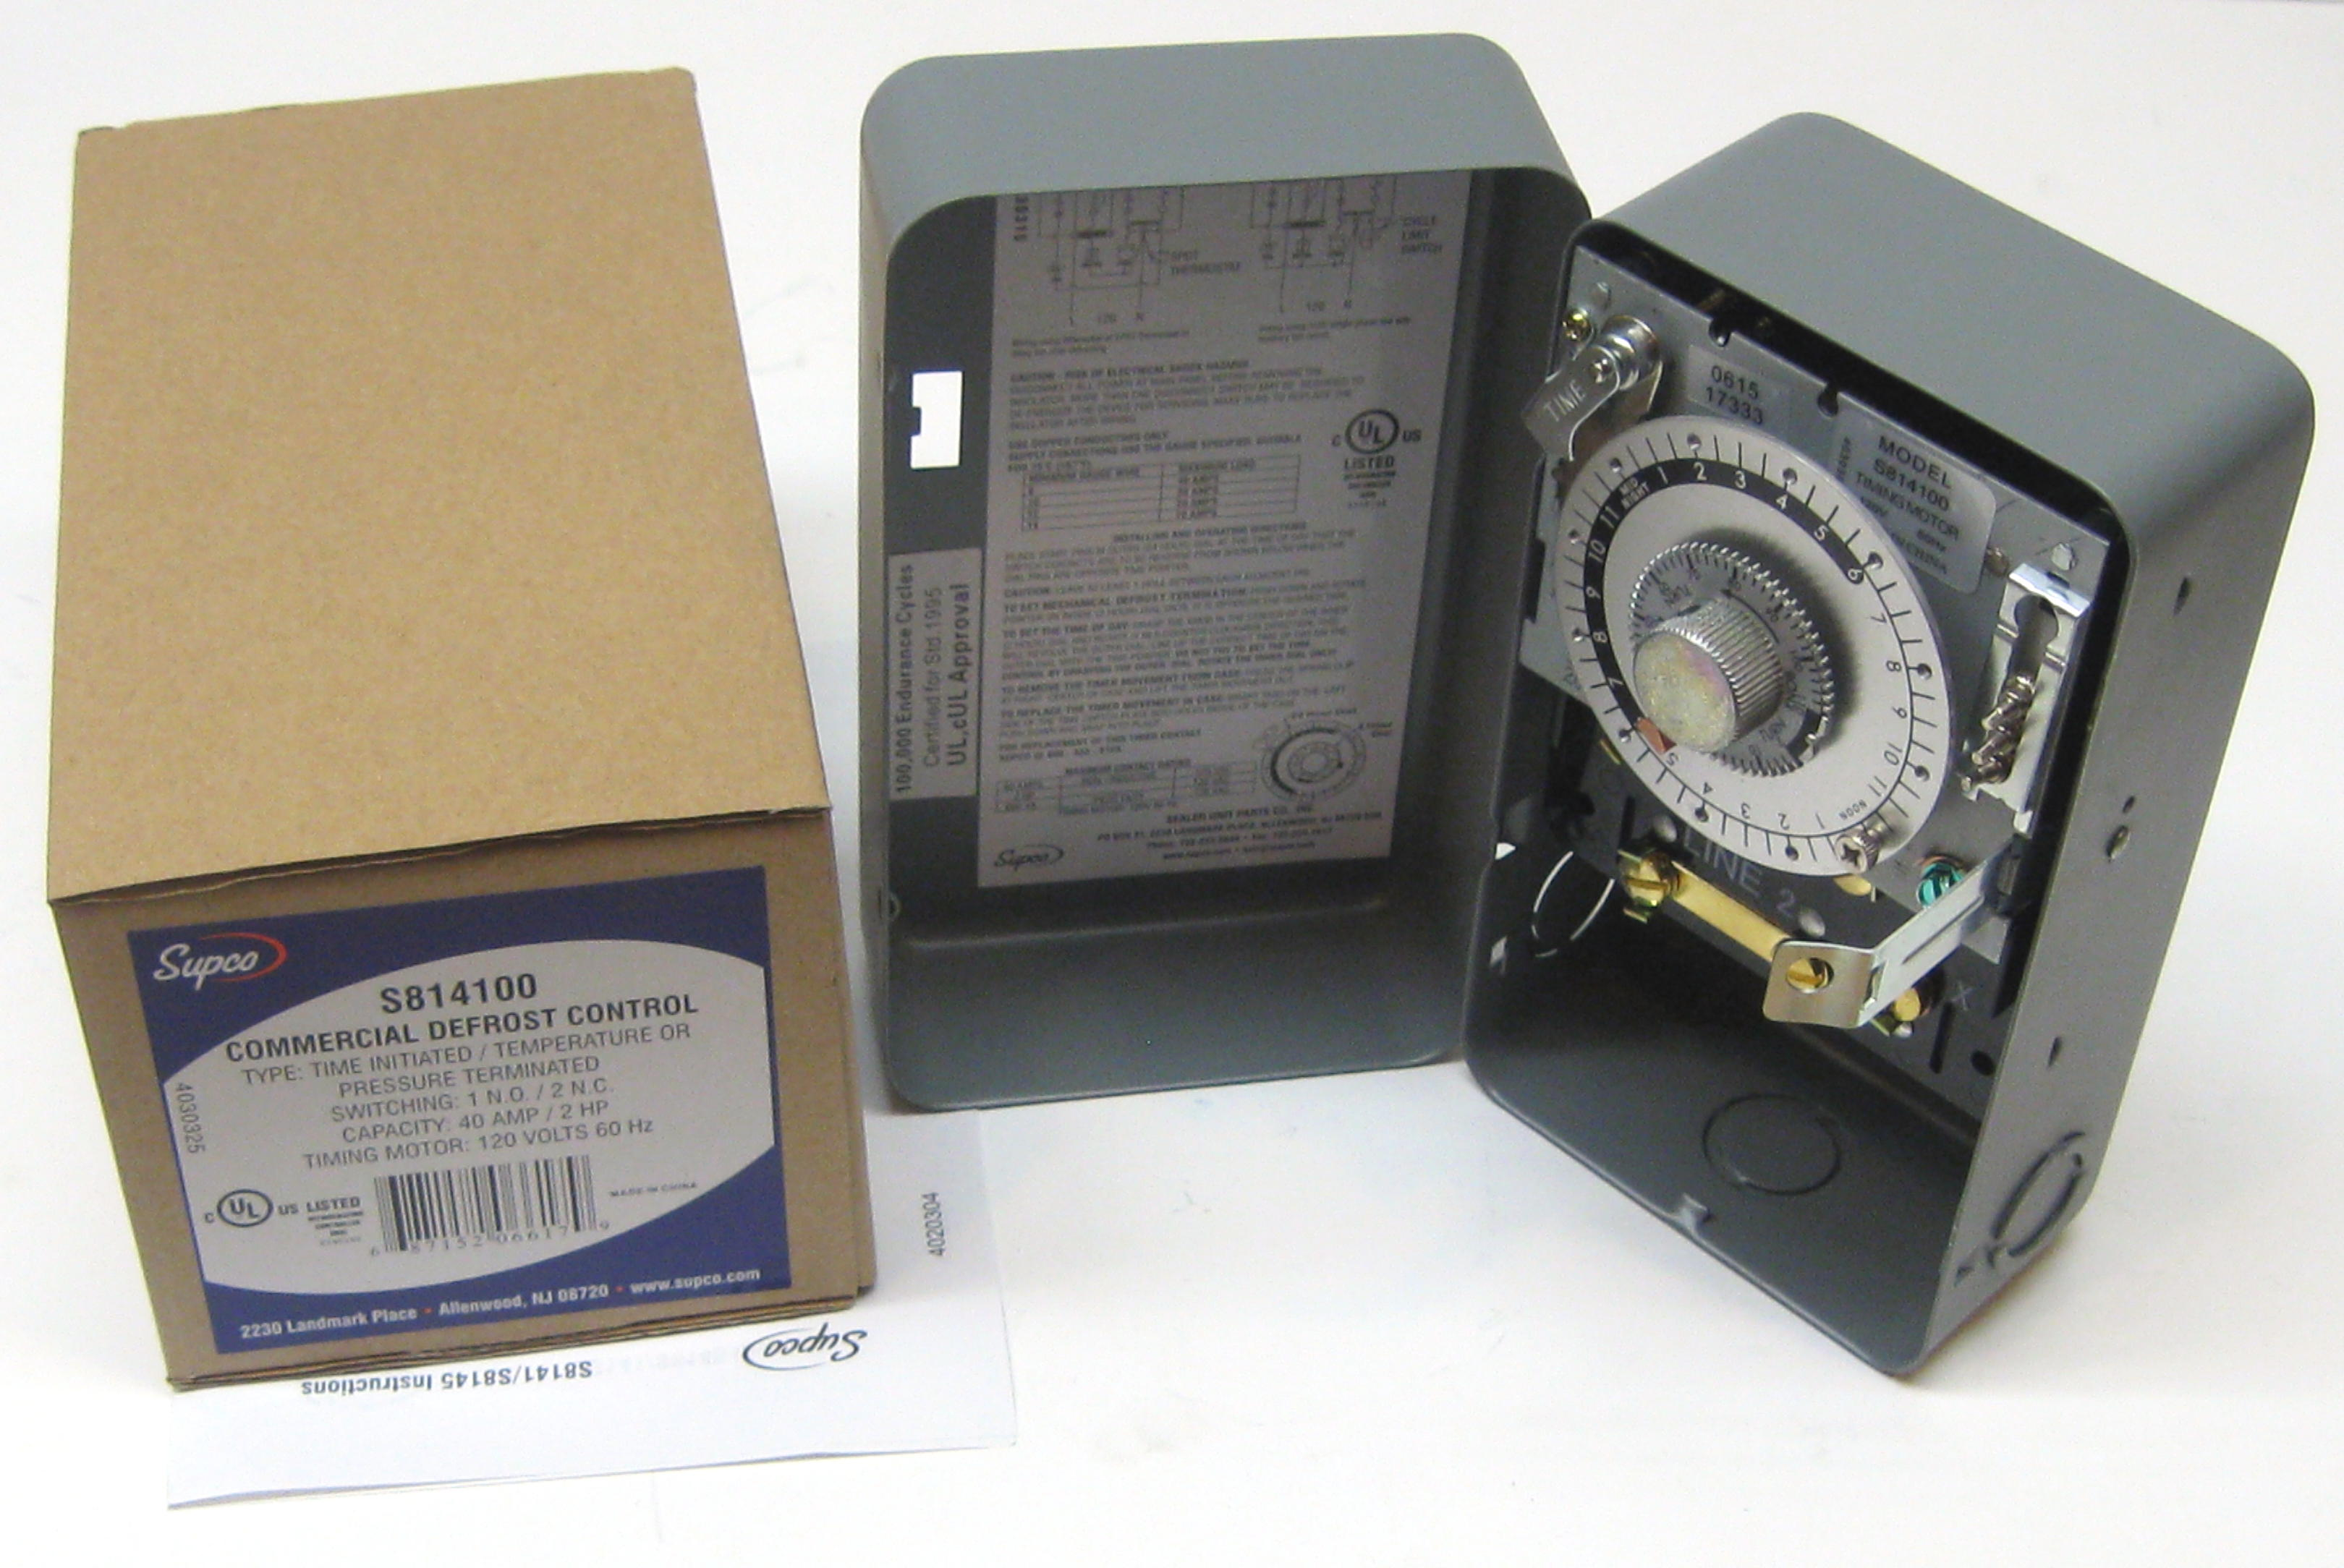 s814100 supco commercial refrigeration defrost timer for paragon